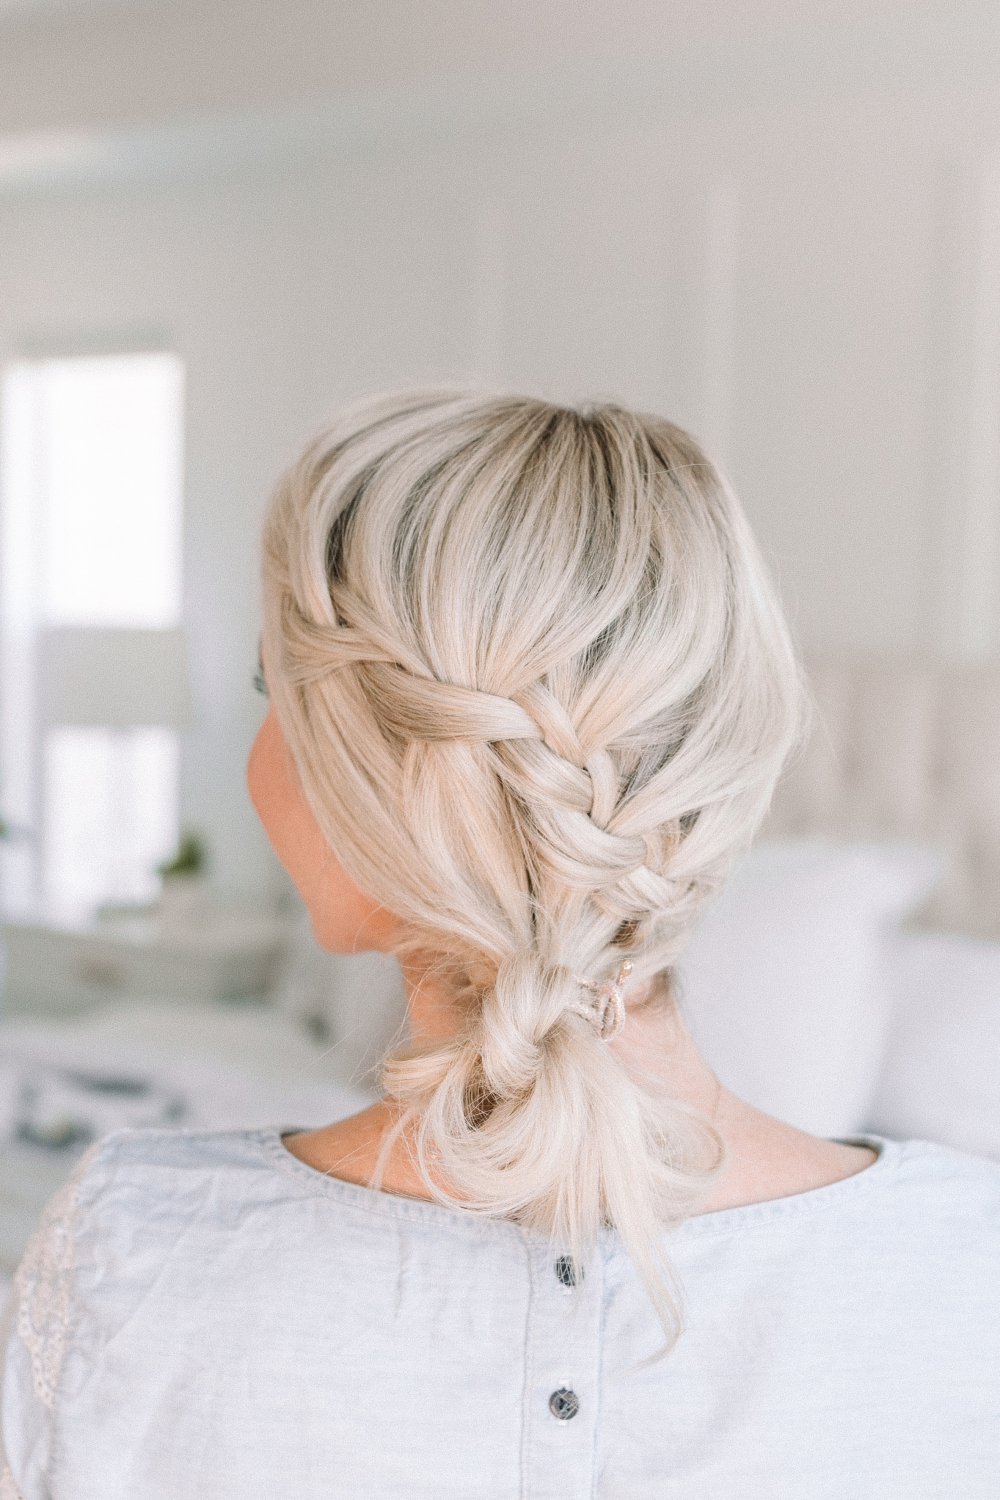 This darling hairstyle is perfect for summer from Twistmepretty.com